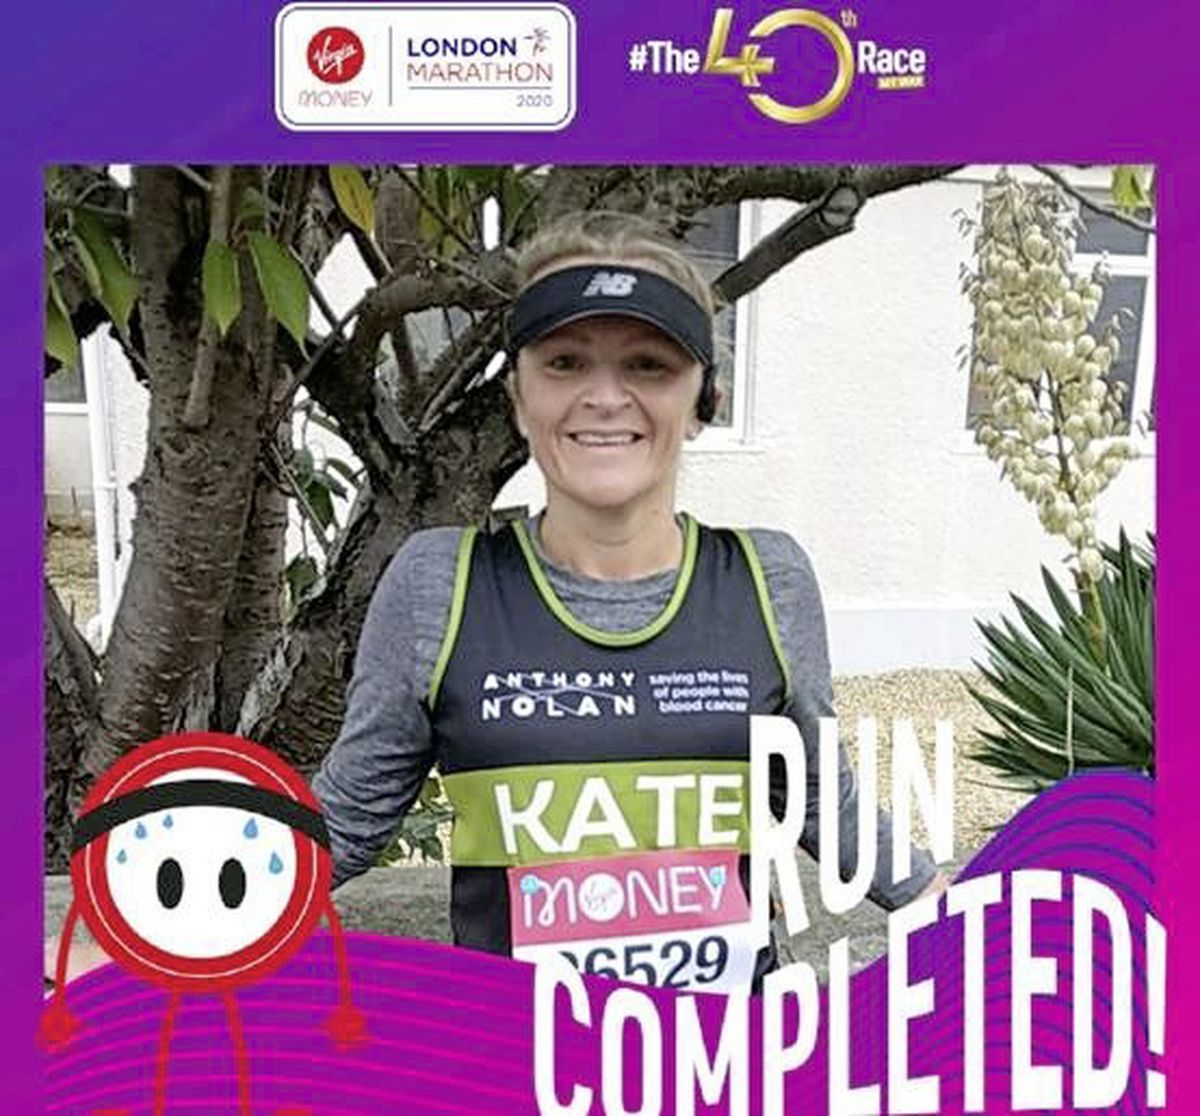 Kate Walford after she completed the virtual Virgin London Marathon 2020. She was commended in the Shirley Nolan Special Recognition Award category at the Anthony Nolan Supporter Awards, at which Oscar-winning actress Olivia Colman was a guest presenter and mentioned her name.